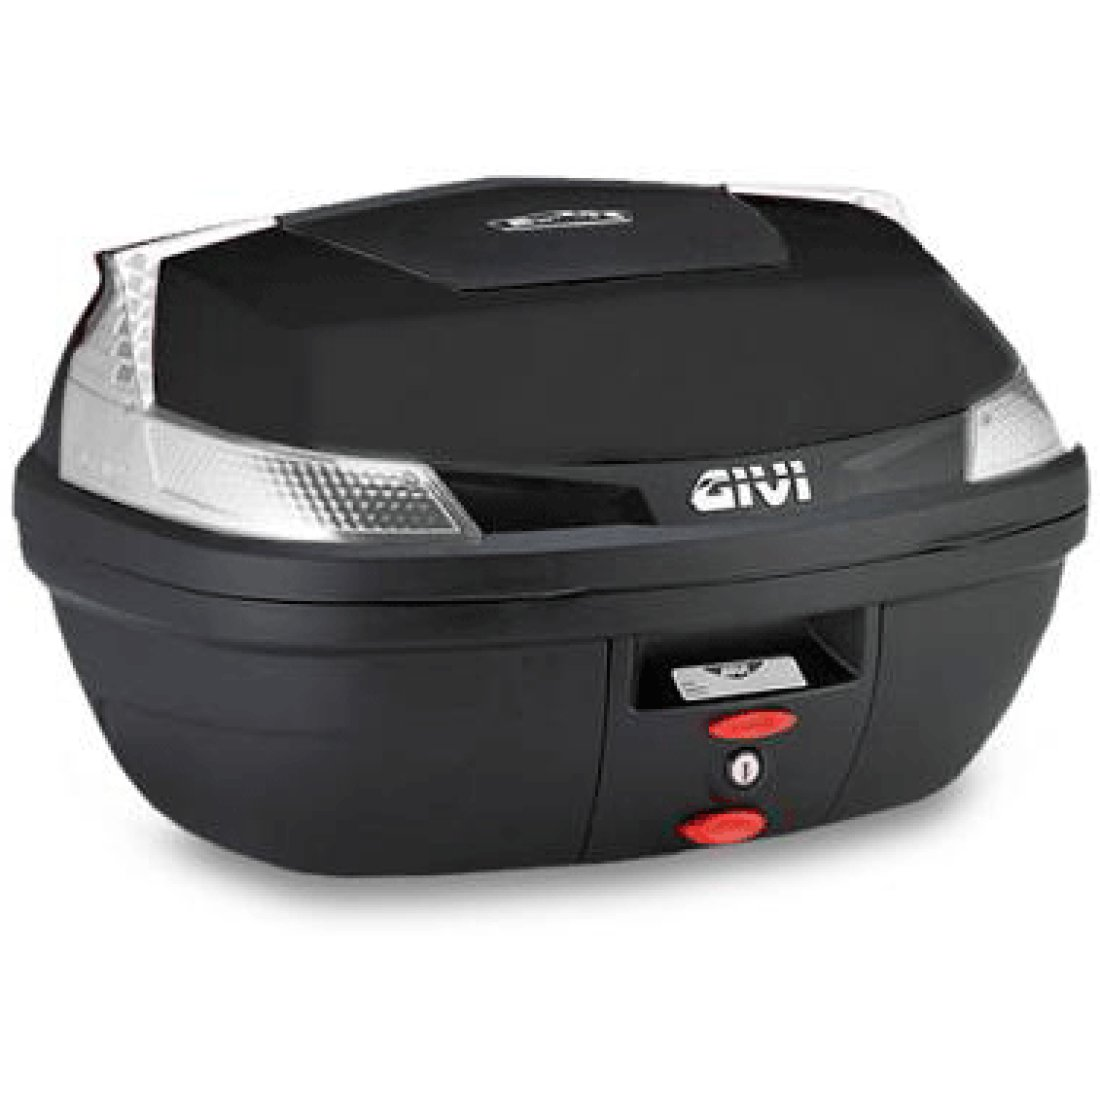 Valise GIVI B47 Blade Tech Monolock Black UNICA